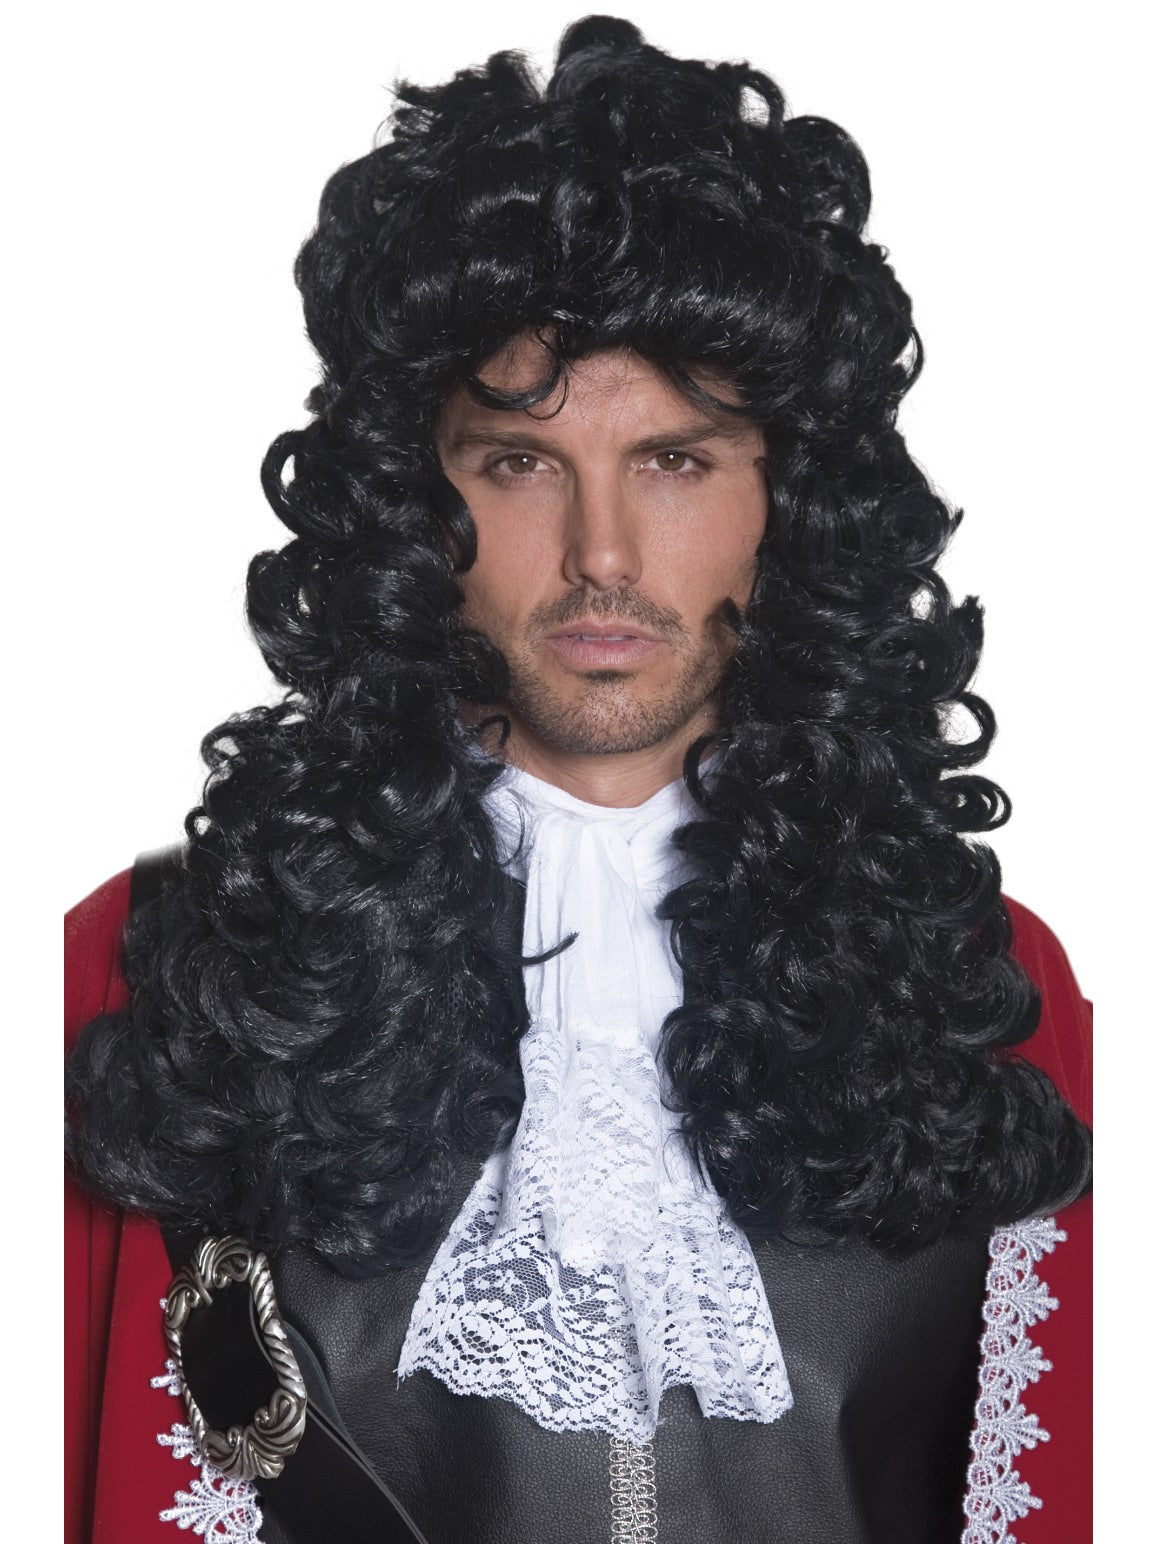 Black Pirate Captain Wig